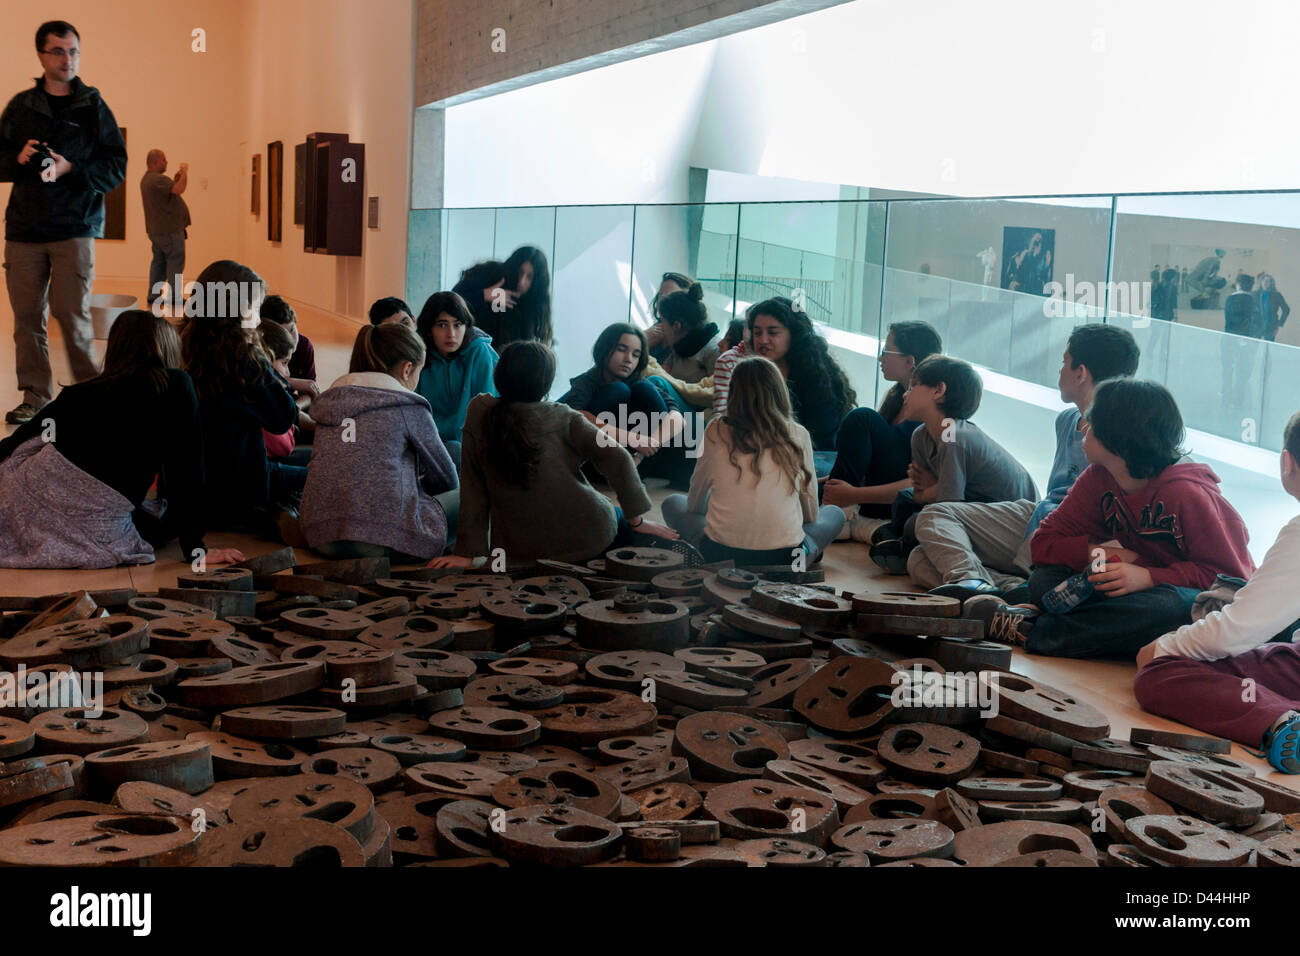 Israel. A group of school pupils near an artwork at the Tel-Aviv museum of art. - Stock Image